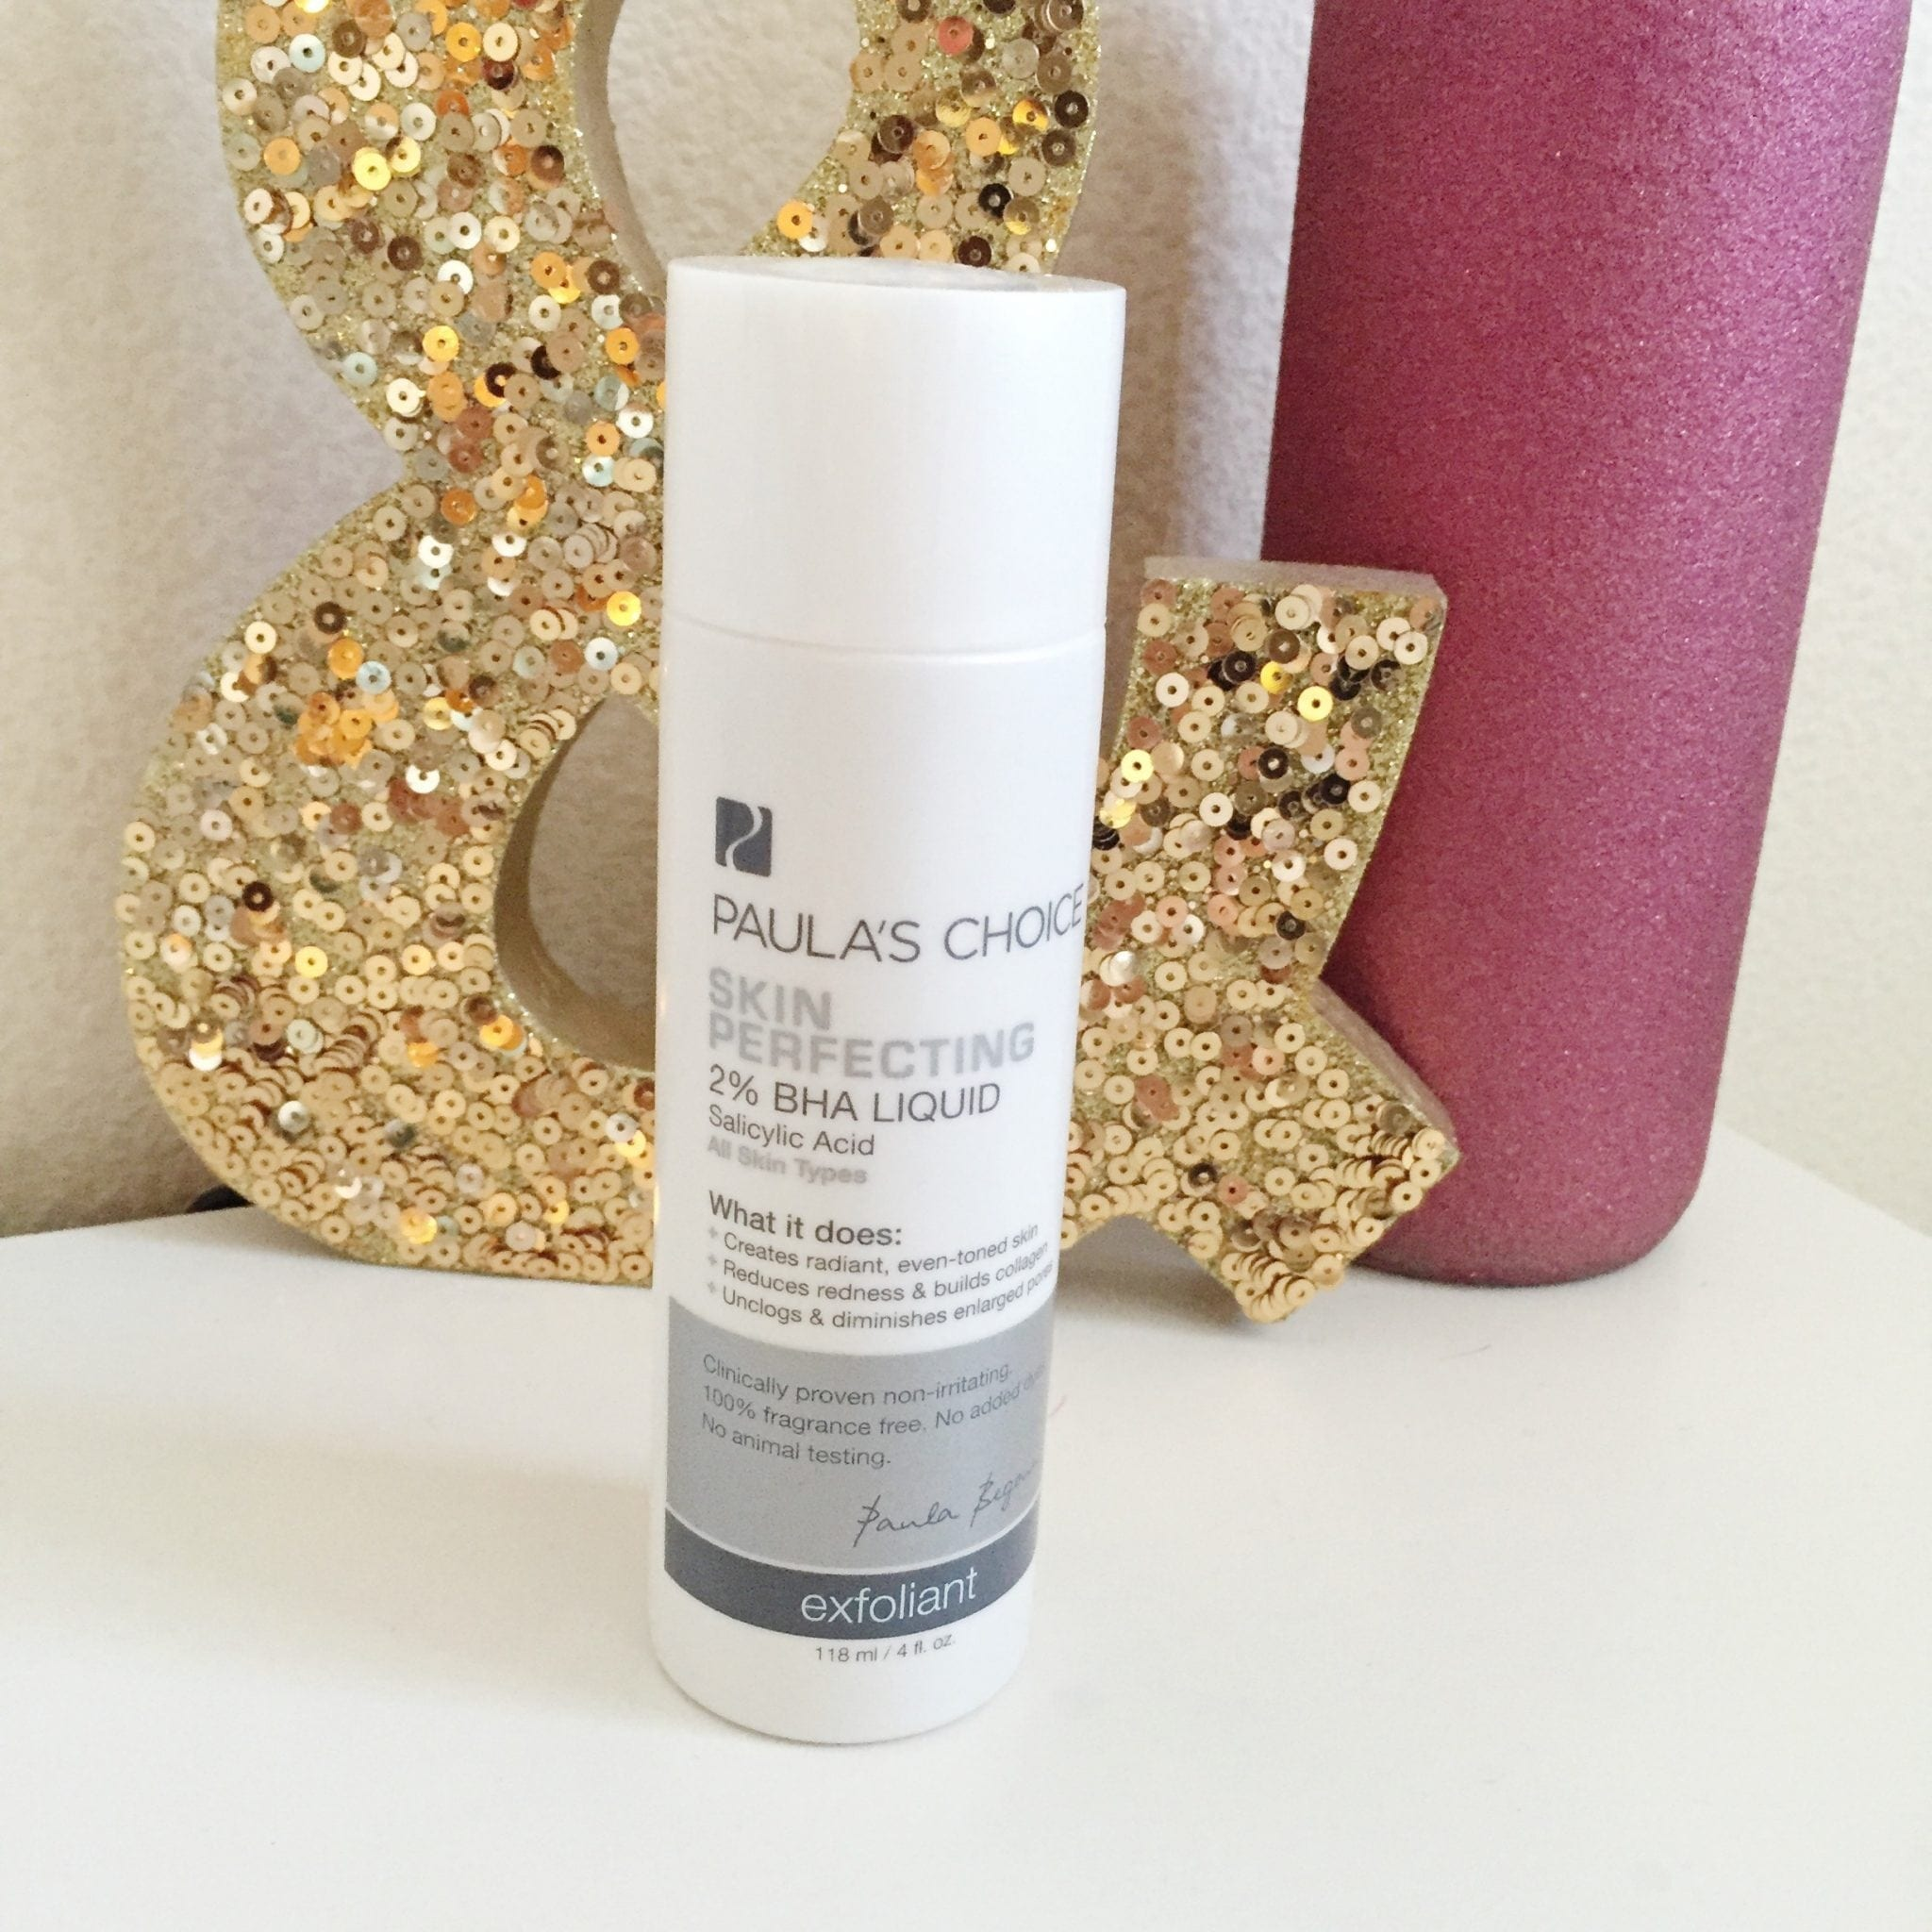 Paula S Choice Skin Perfecting 2 Bha Liquid Exfoliant